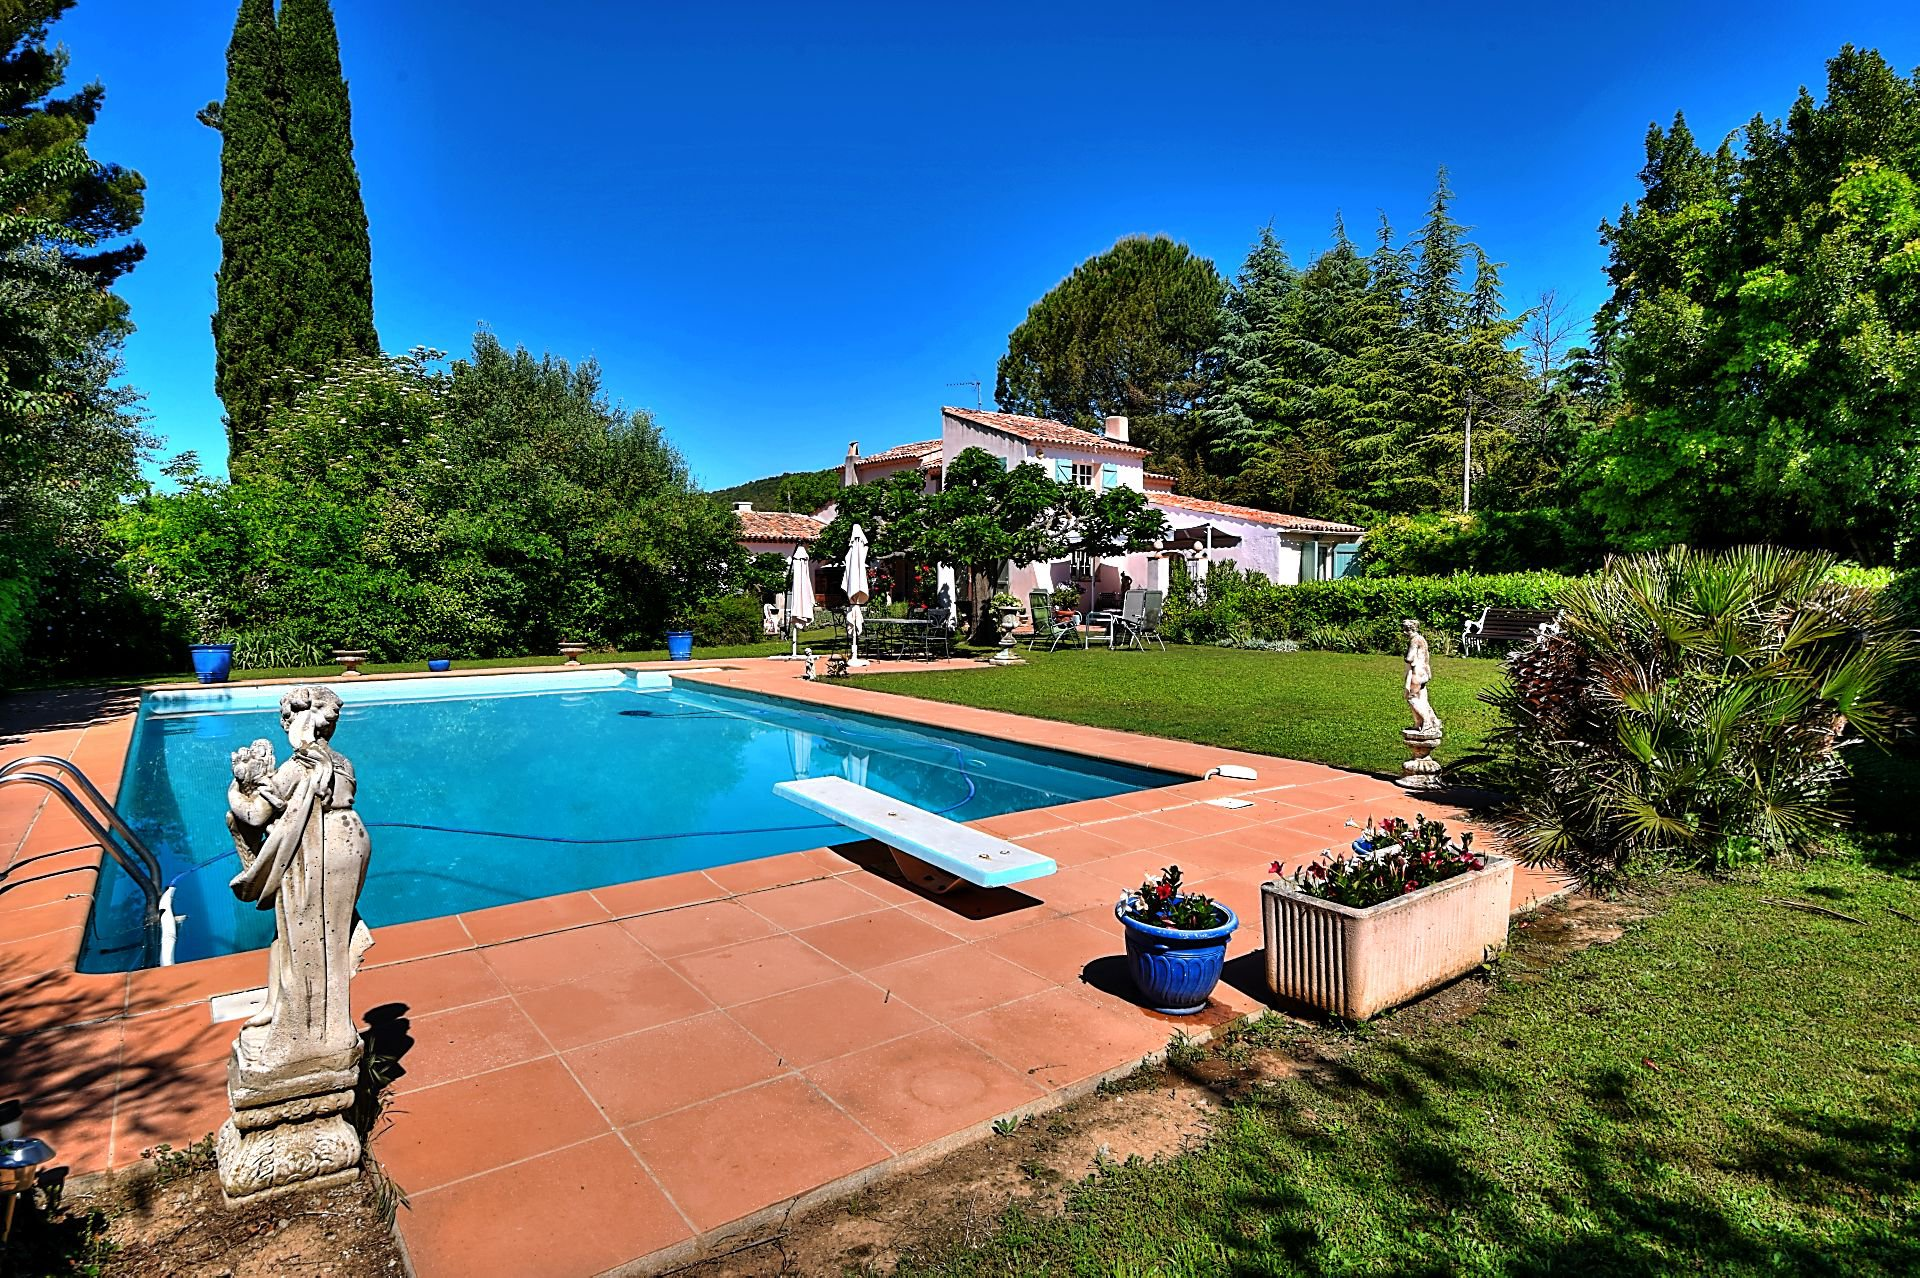 Villa in park swimming pool Villecroze Var Provence